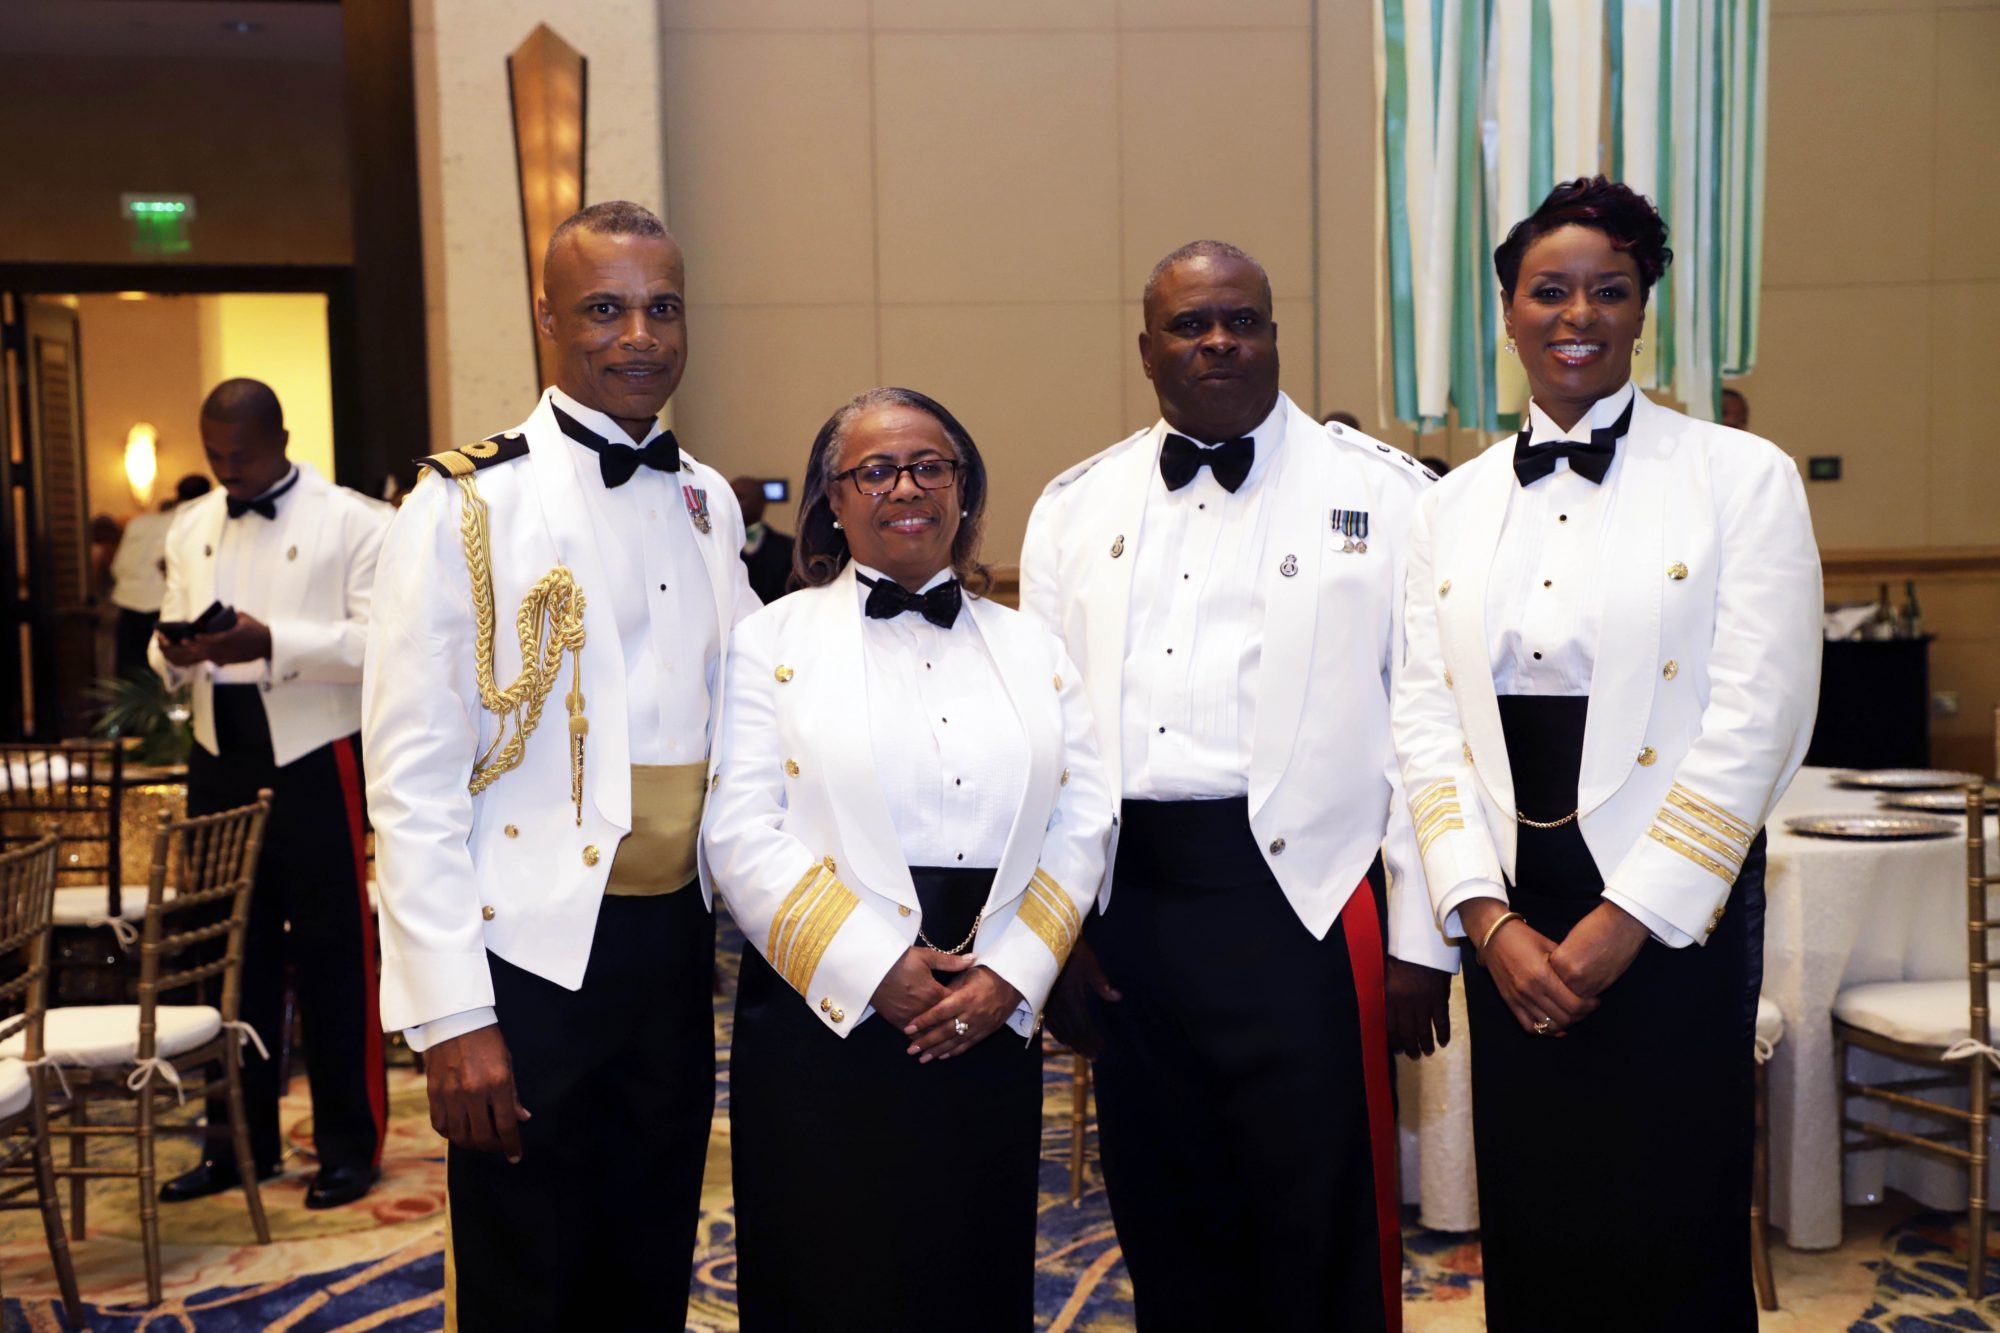 From left: Commodore Tellis Bethel; Comptroller of Customs Dr. Geannine Moss and Commissioner of Police Anthony Ferguson.